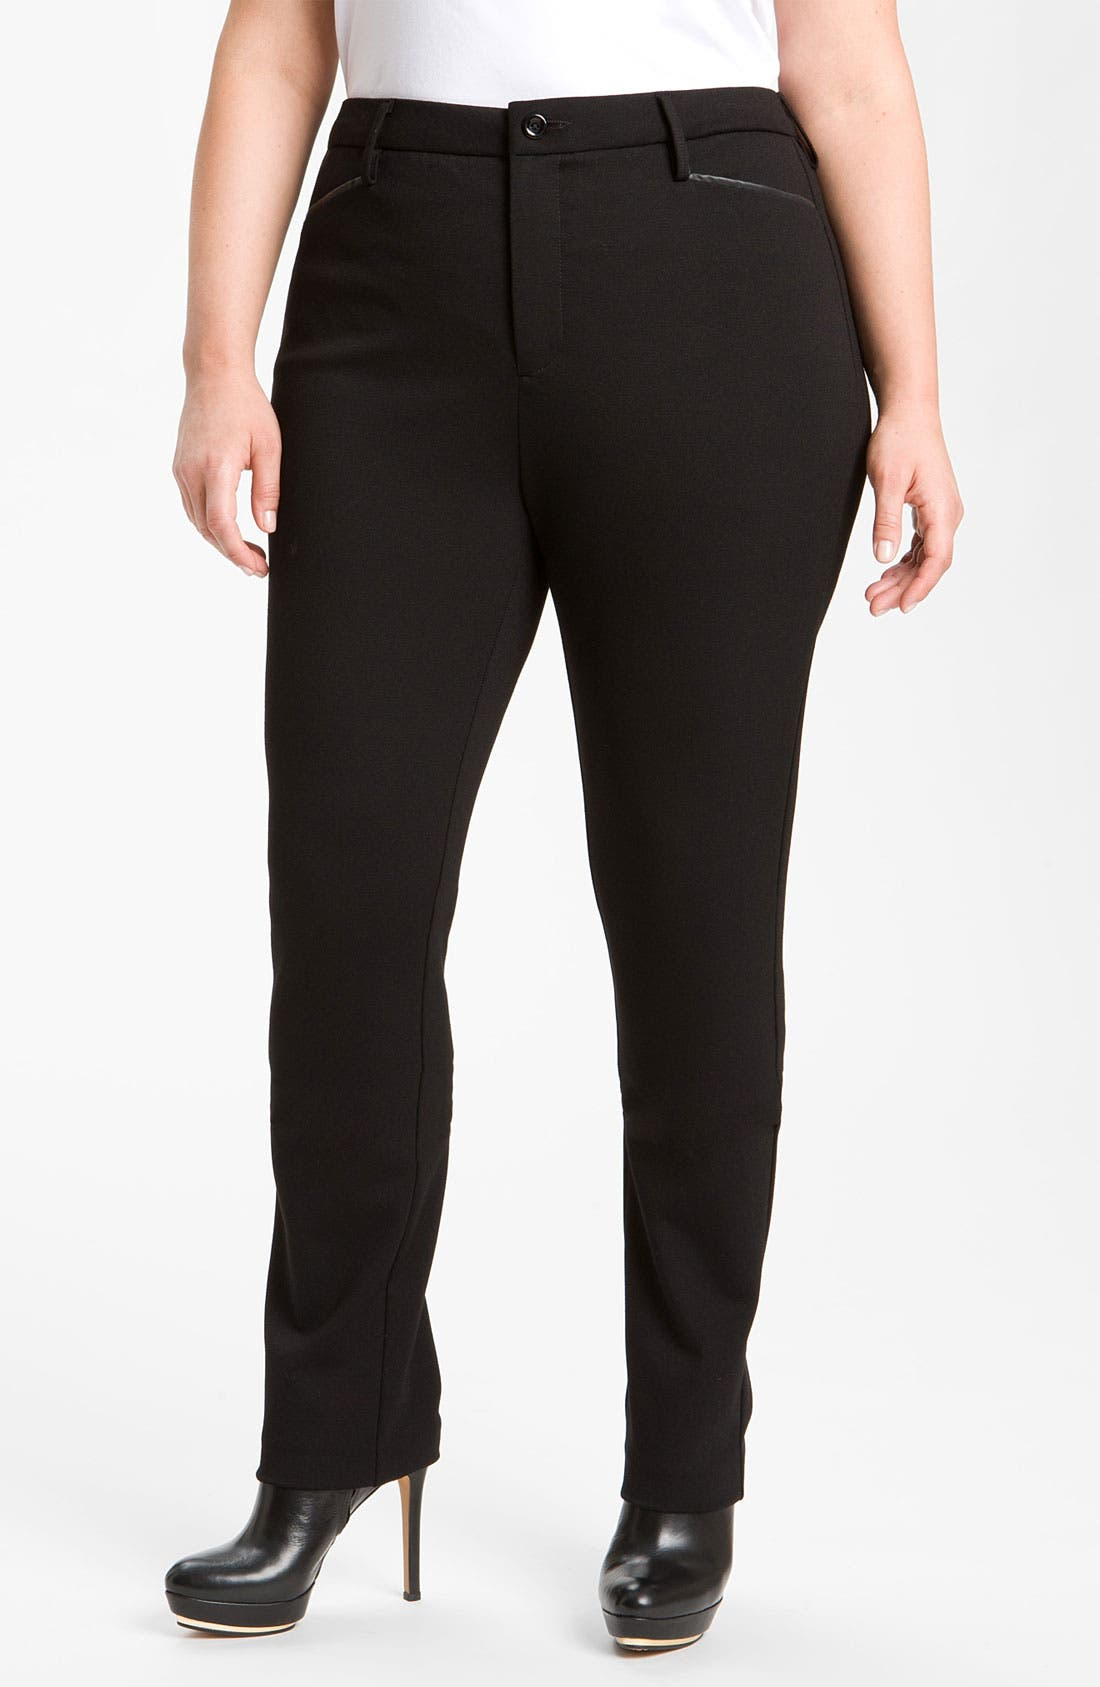 Alternate Image 2  - NYDJ Stretch Ponte Knit Pants (Plus)